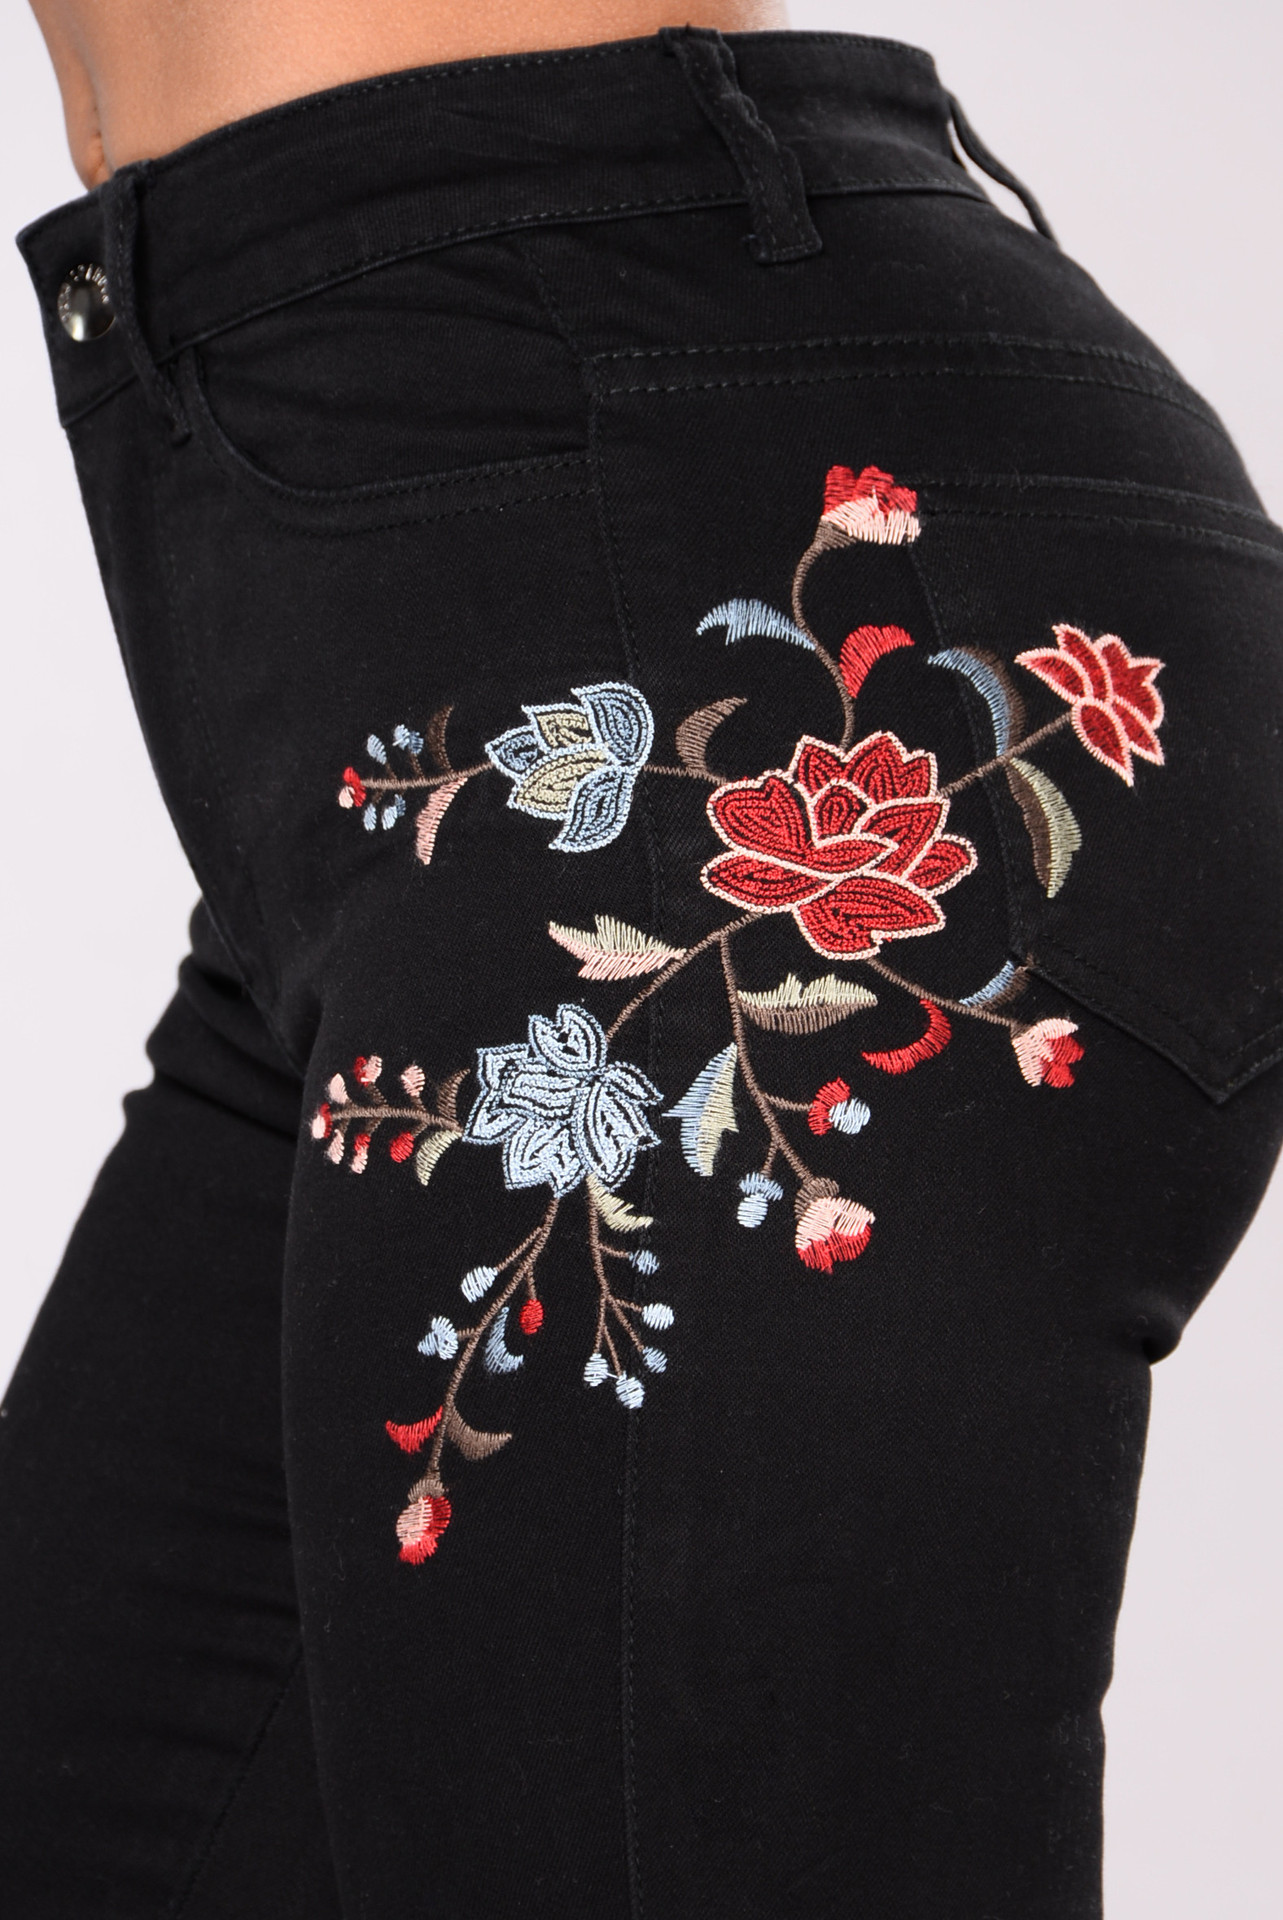 SZ60120 Womens Rose Embroidered High Waist Ripped Hole Denim Skinny Jeans Pants